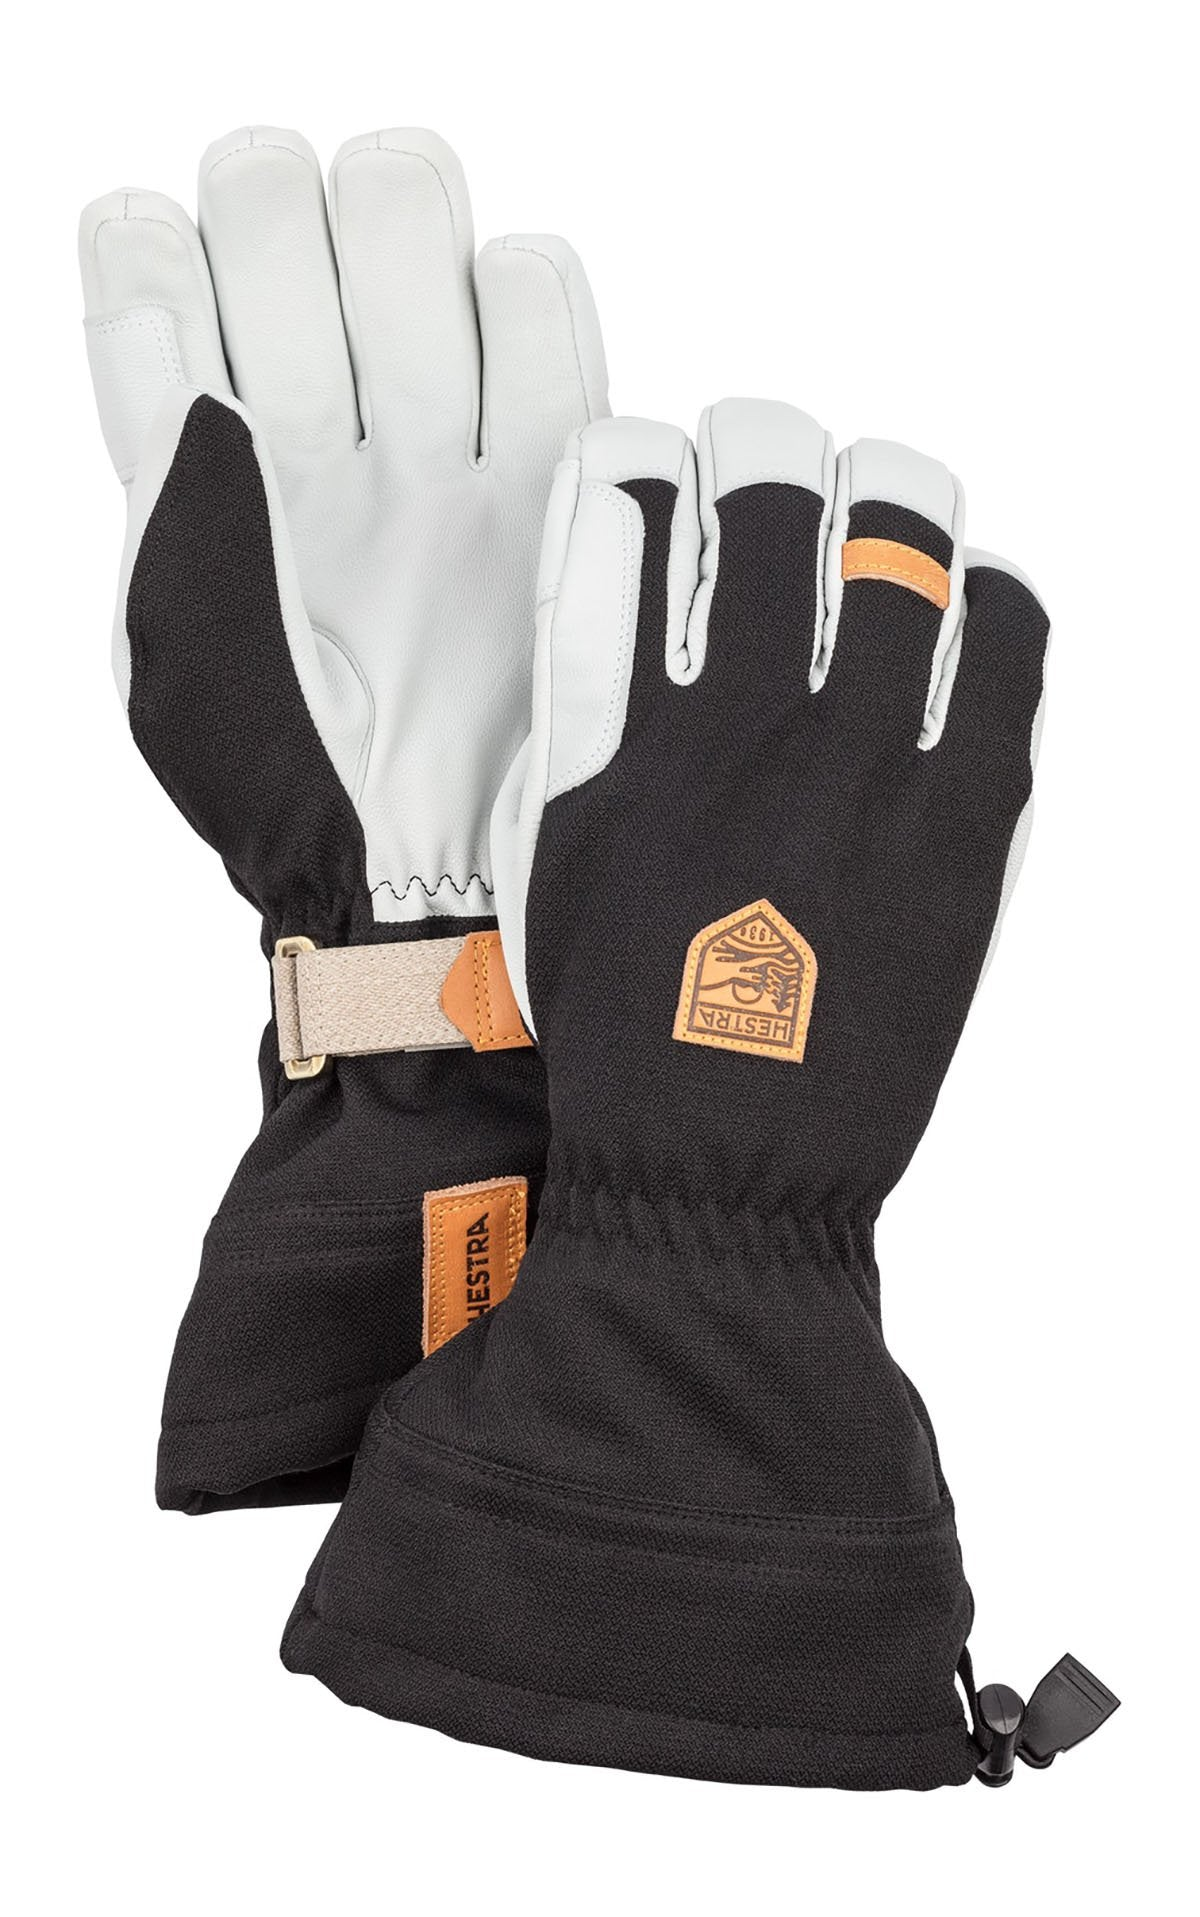 Hestra Army Leather Patrol Gauntlet 5-Finger Skidhandskar